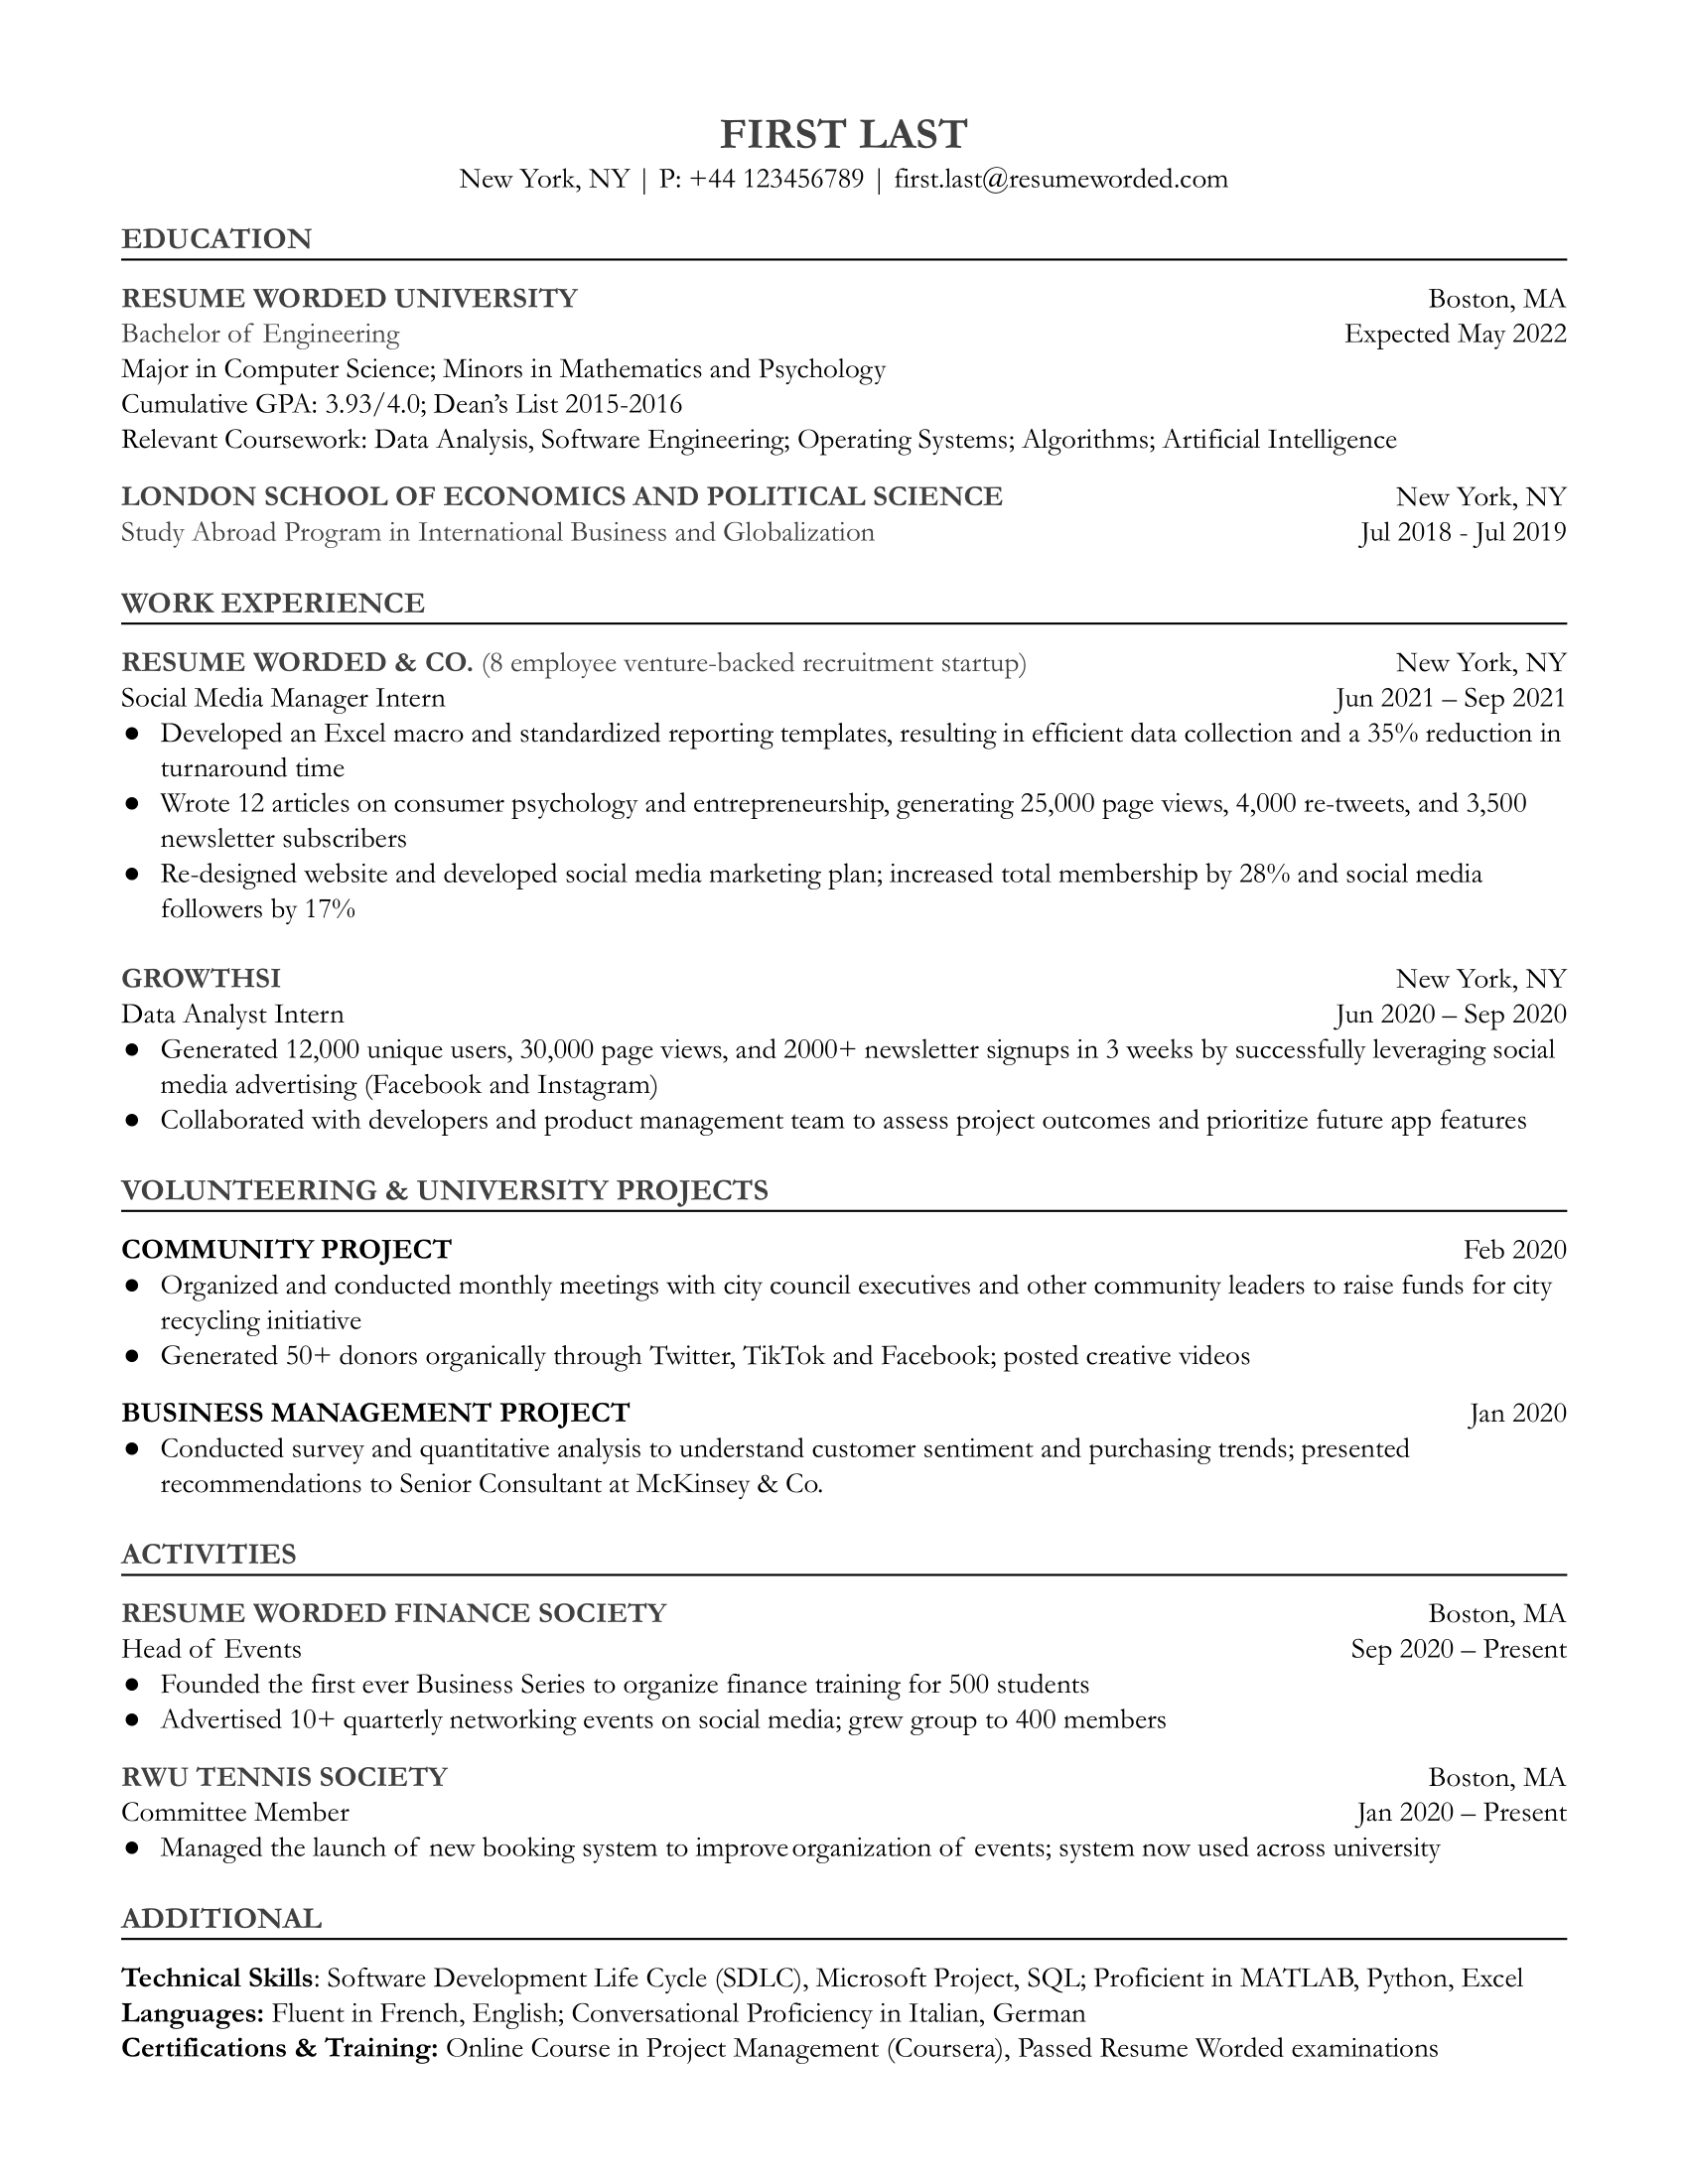 Entry level social media resume that focuses on education and internships